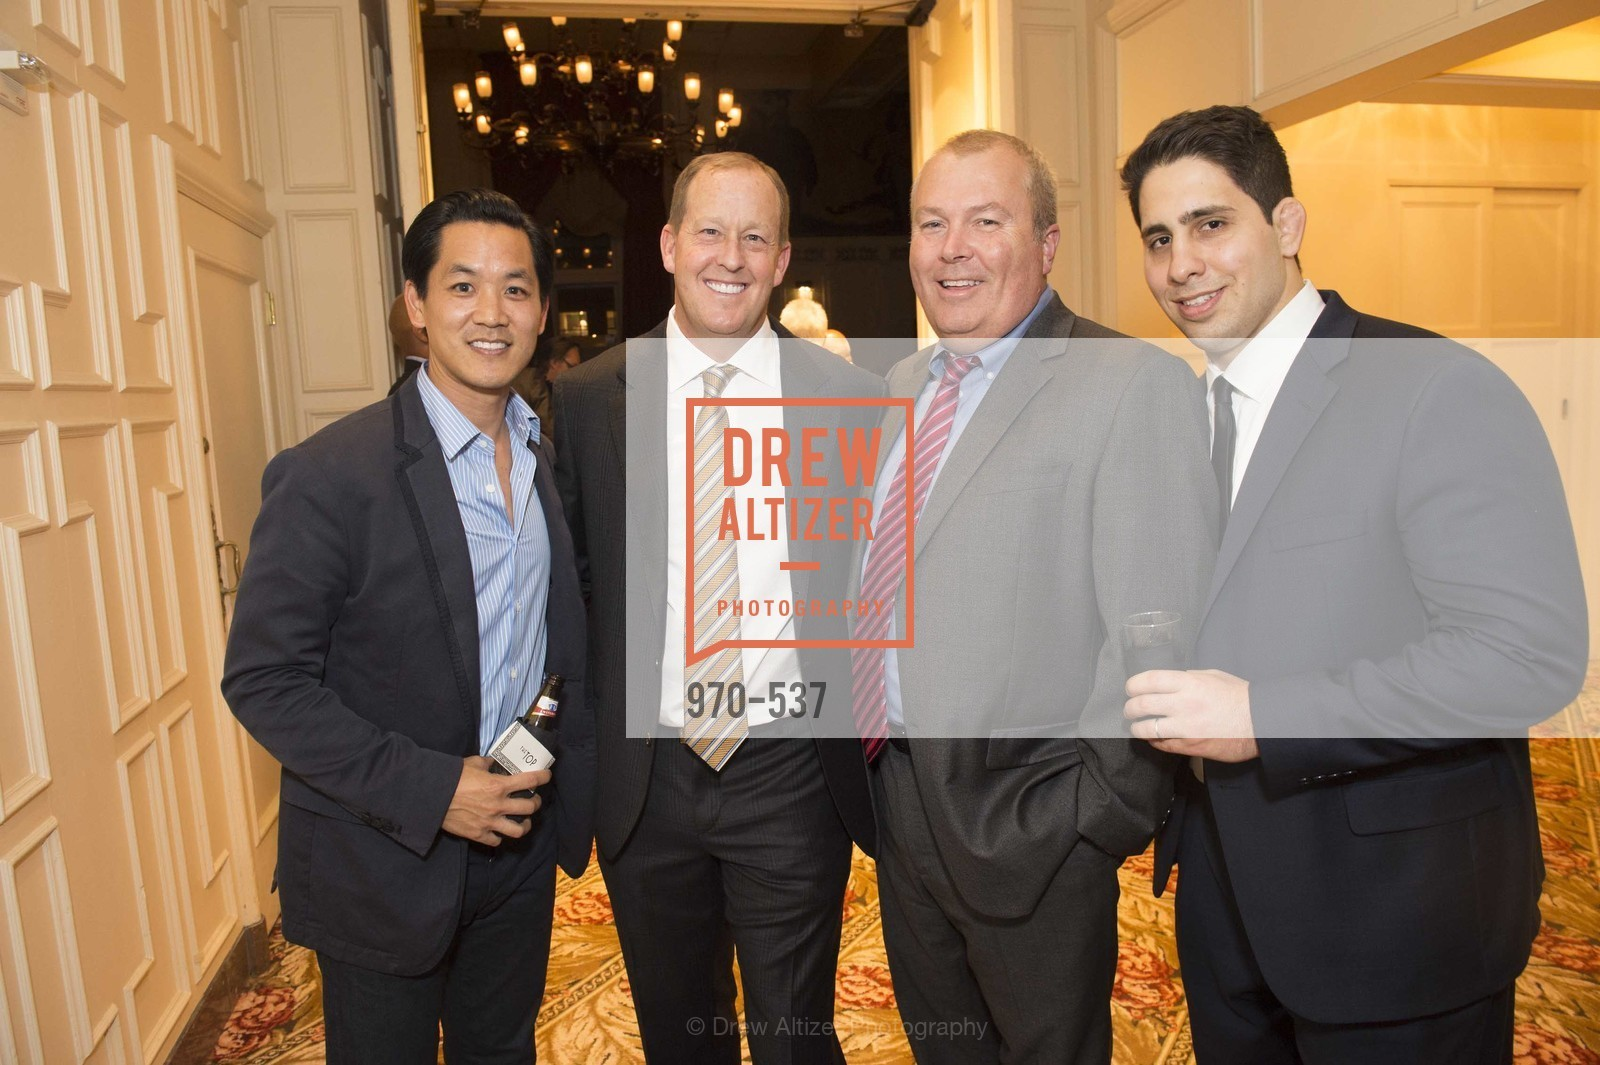 Michael Rosenfeld, Derek Smith, Lior Dimor, TOP OF THE MARK'S 75TH Anniversary Party, US, November 7th, 2014,Drew Altizer, Drew Altizer Photography, full-service event agency, private events, San Francisco photographer, photographer California